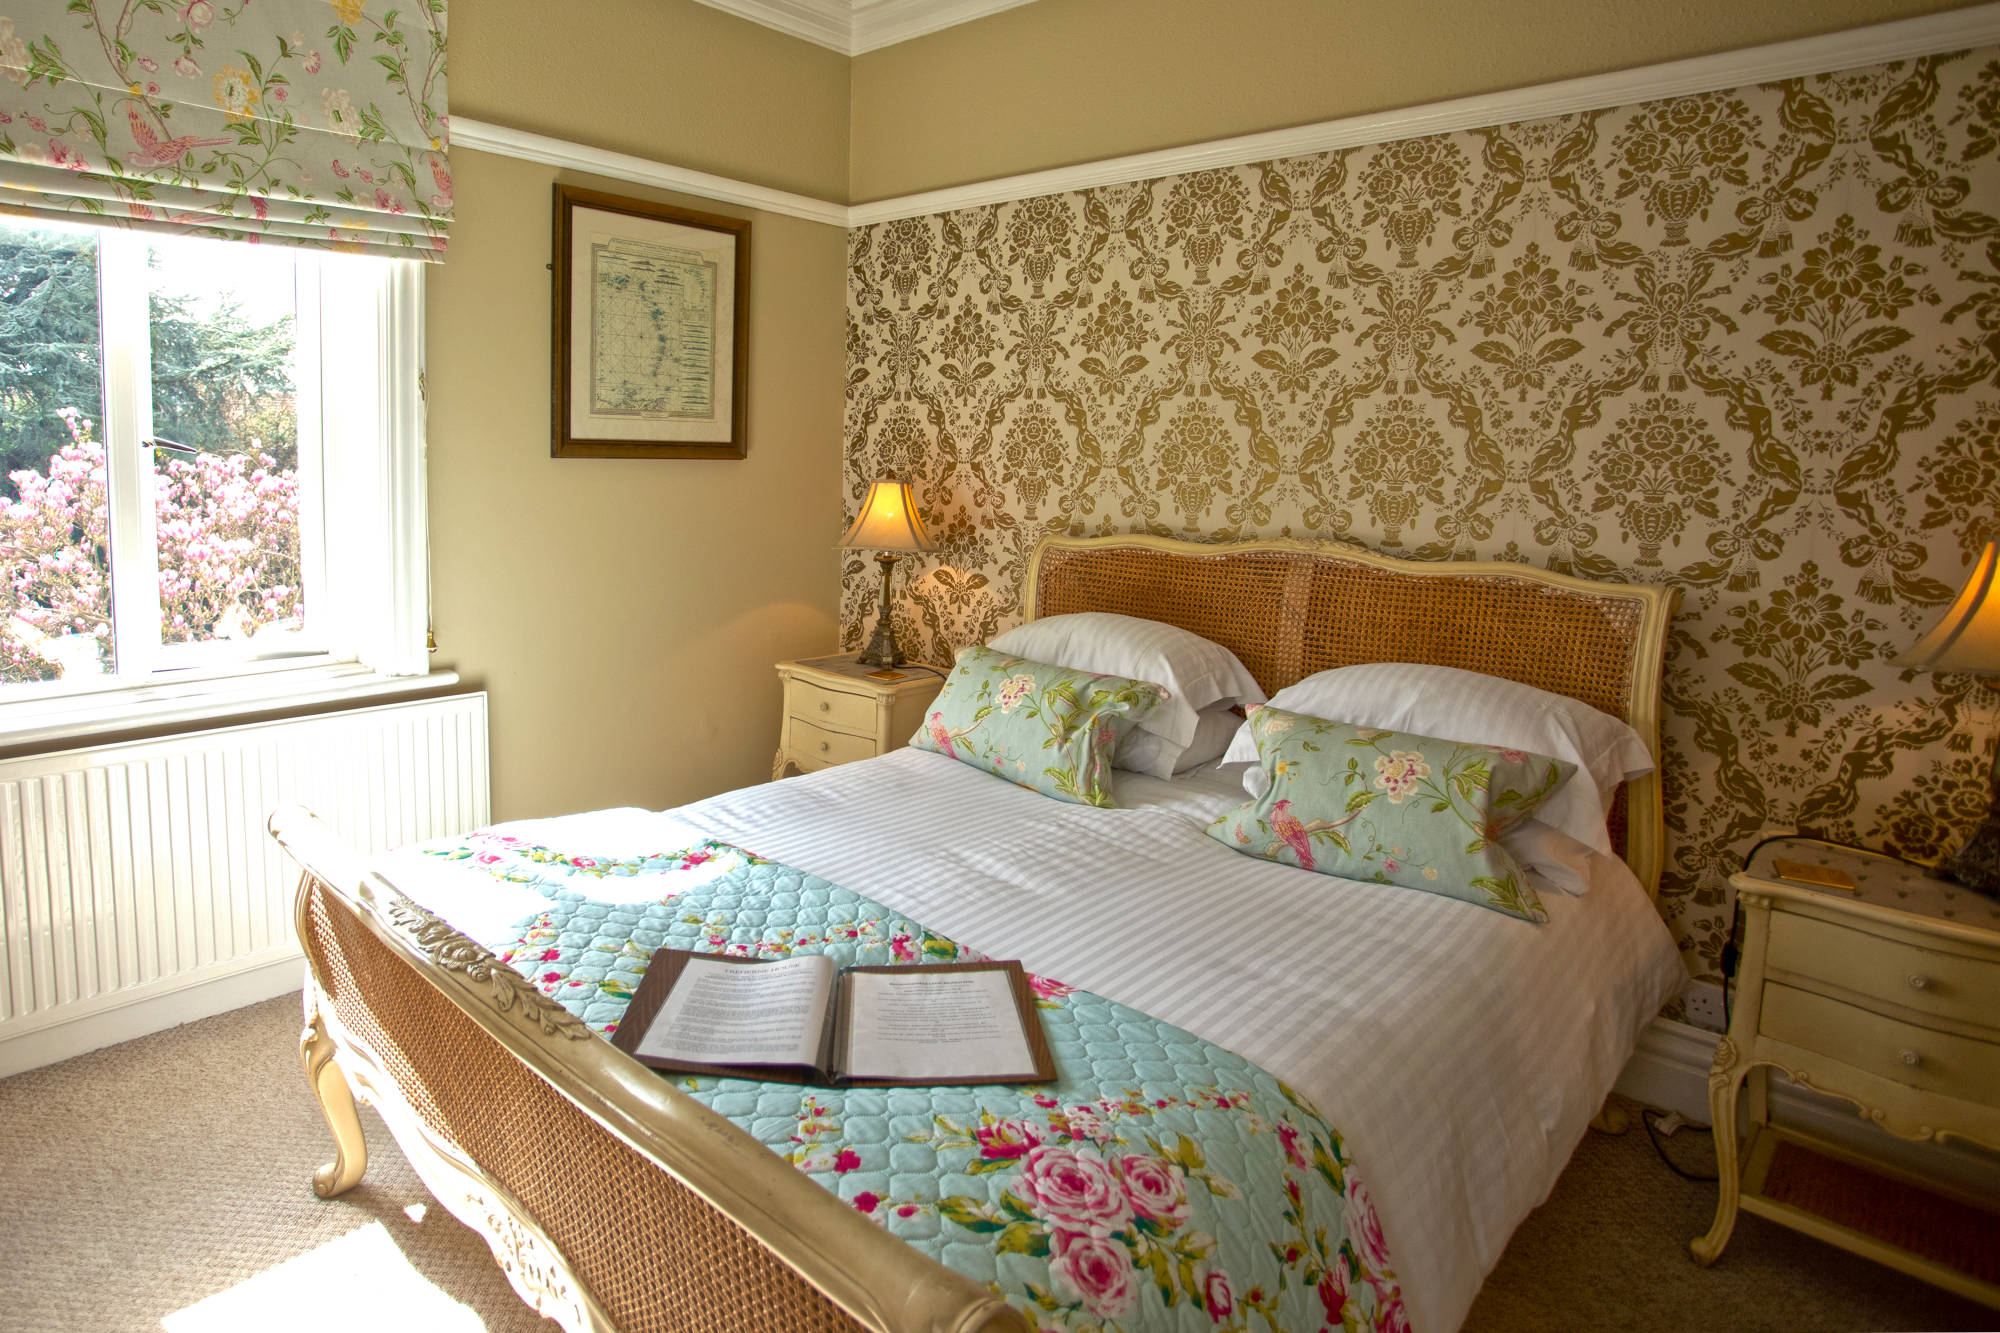 Superior Ensuite Room in The Malvern Hills, Worcestershire